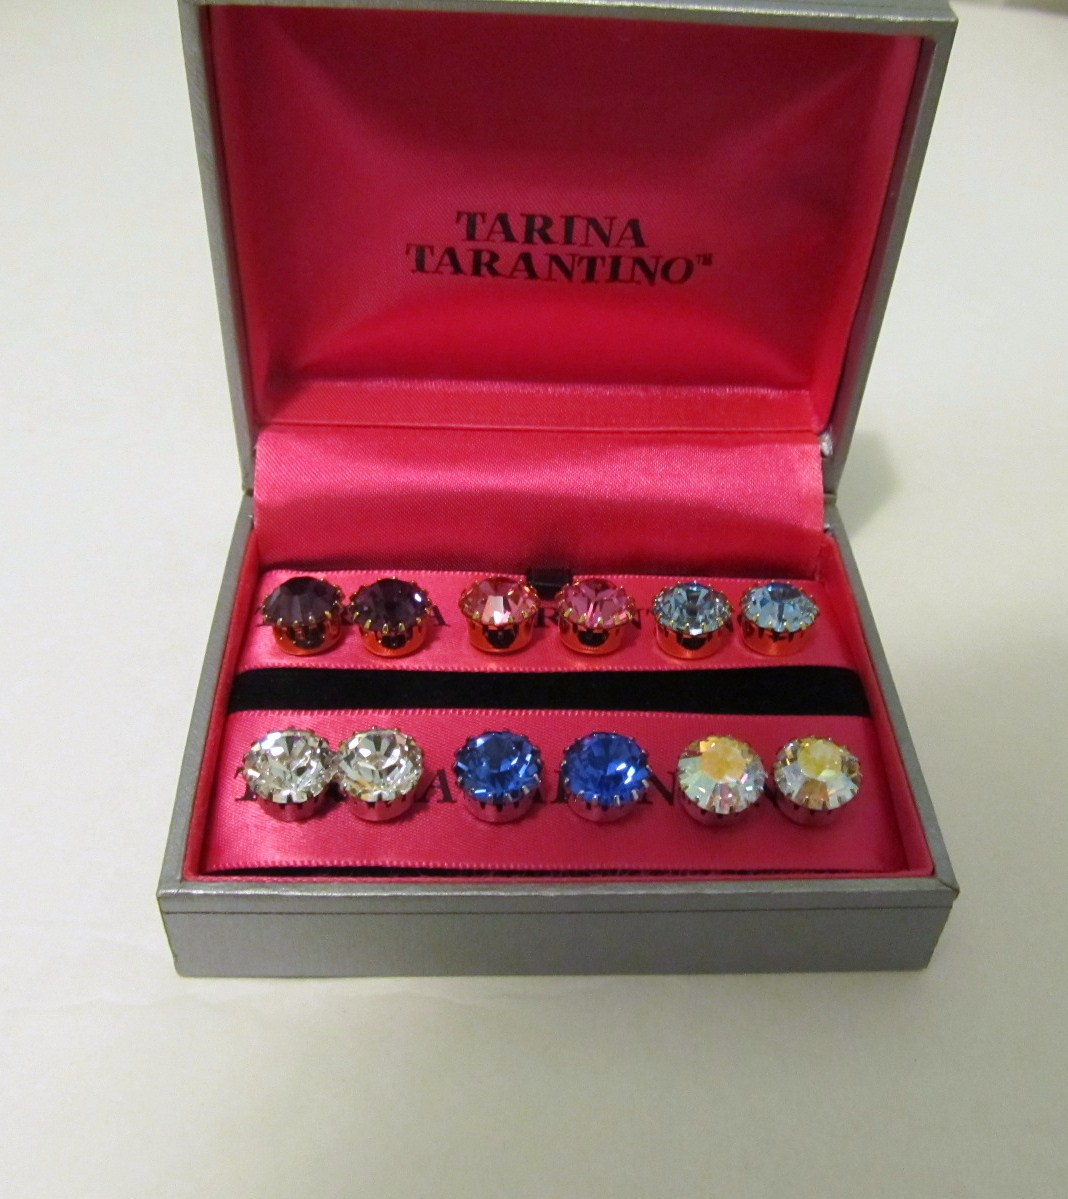 Tarina_tarantino_earrings